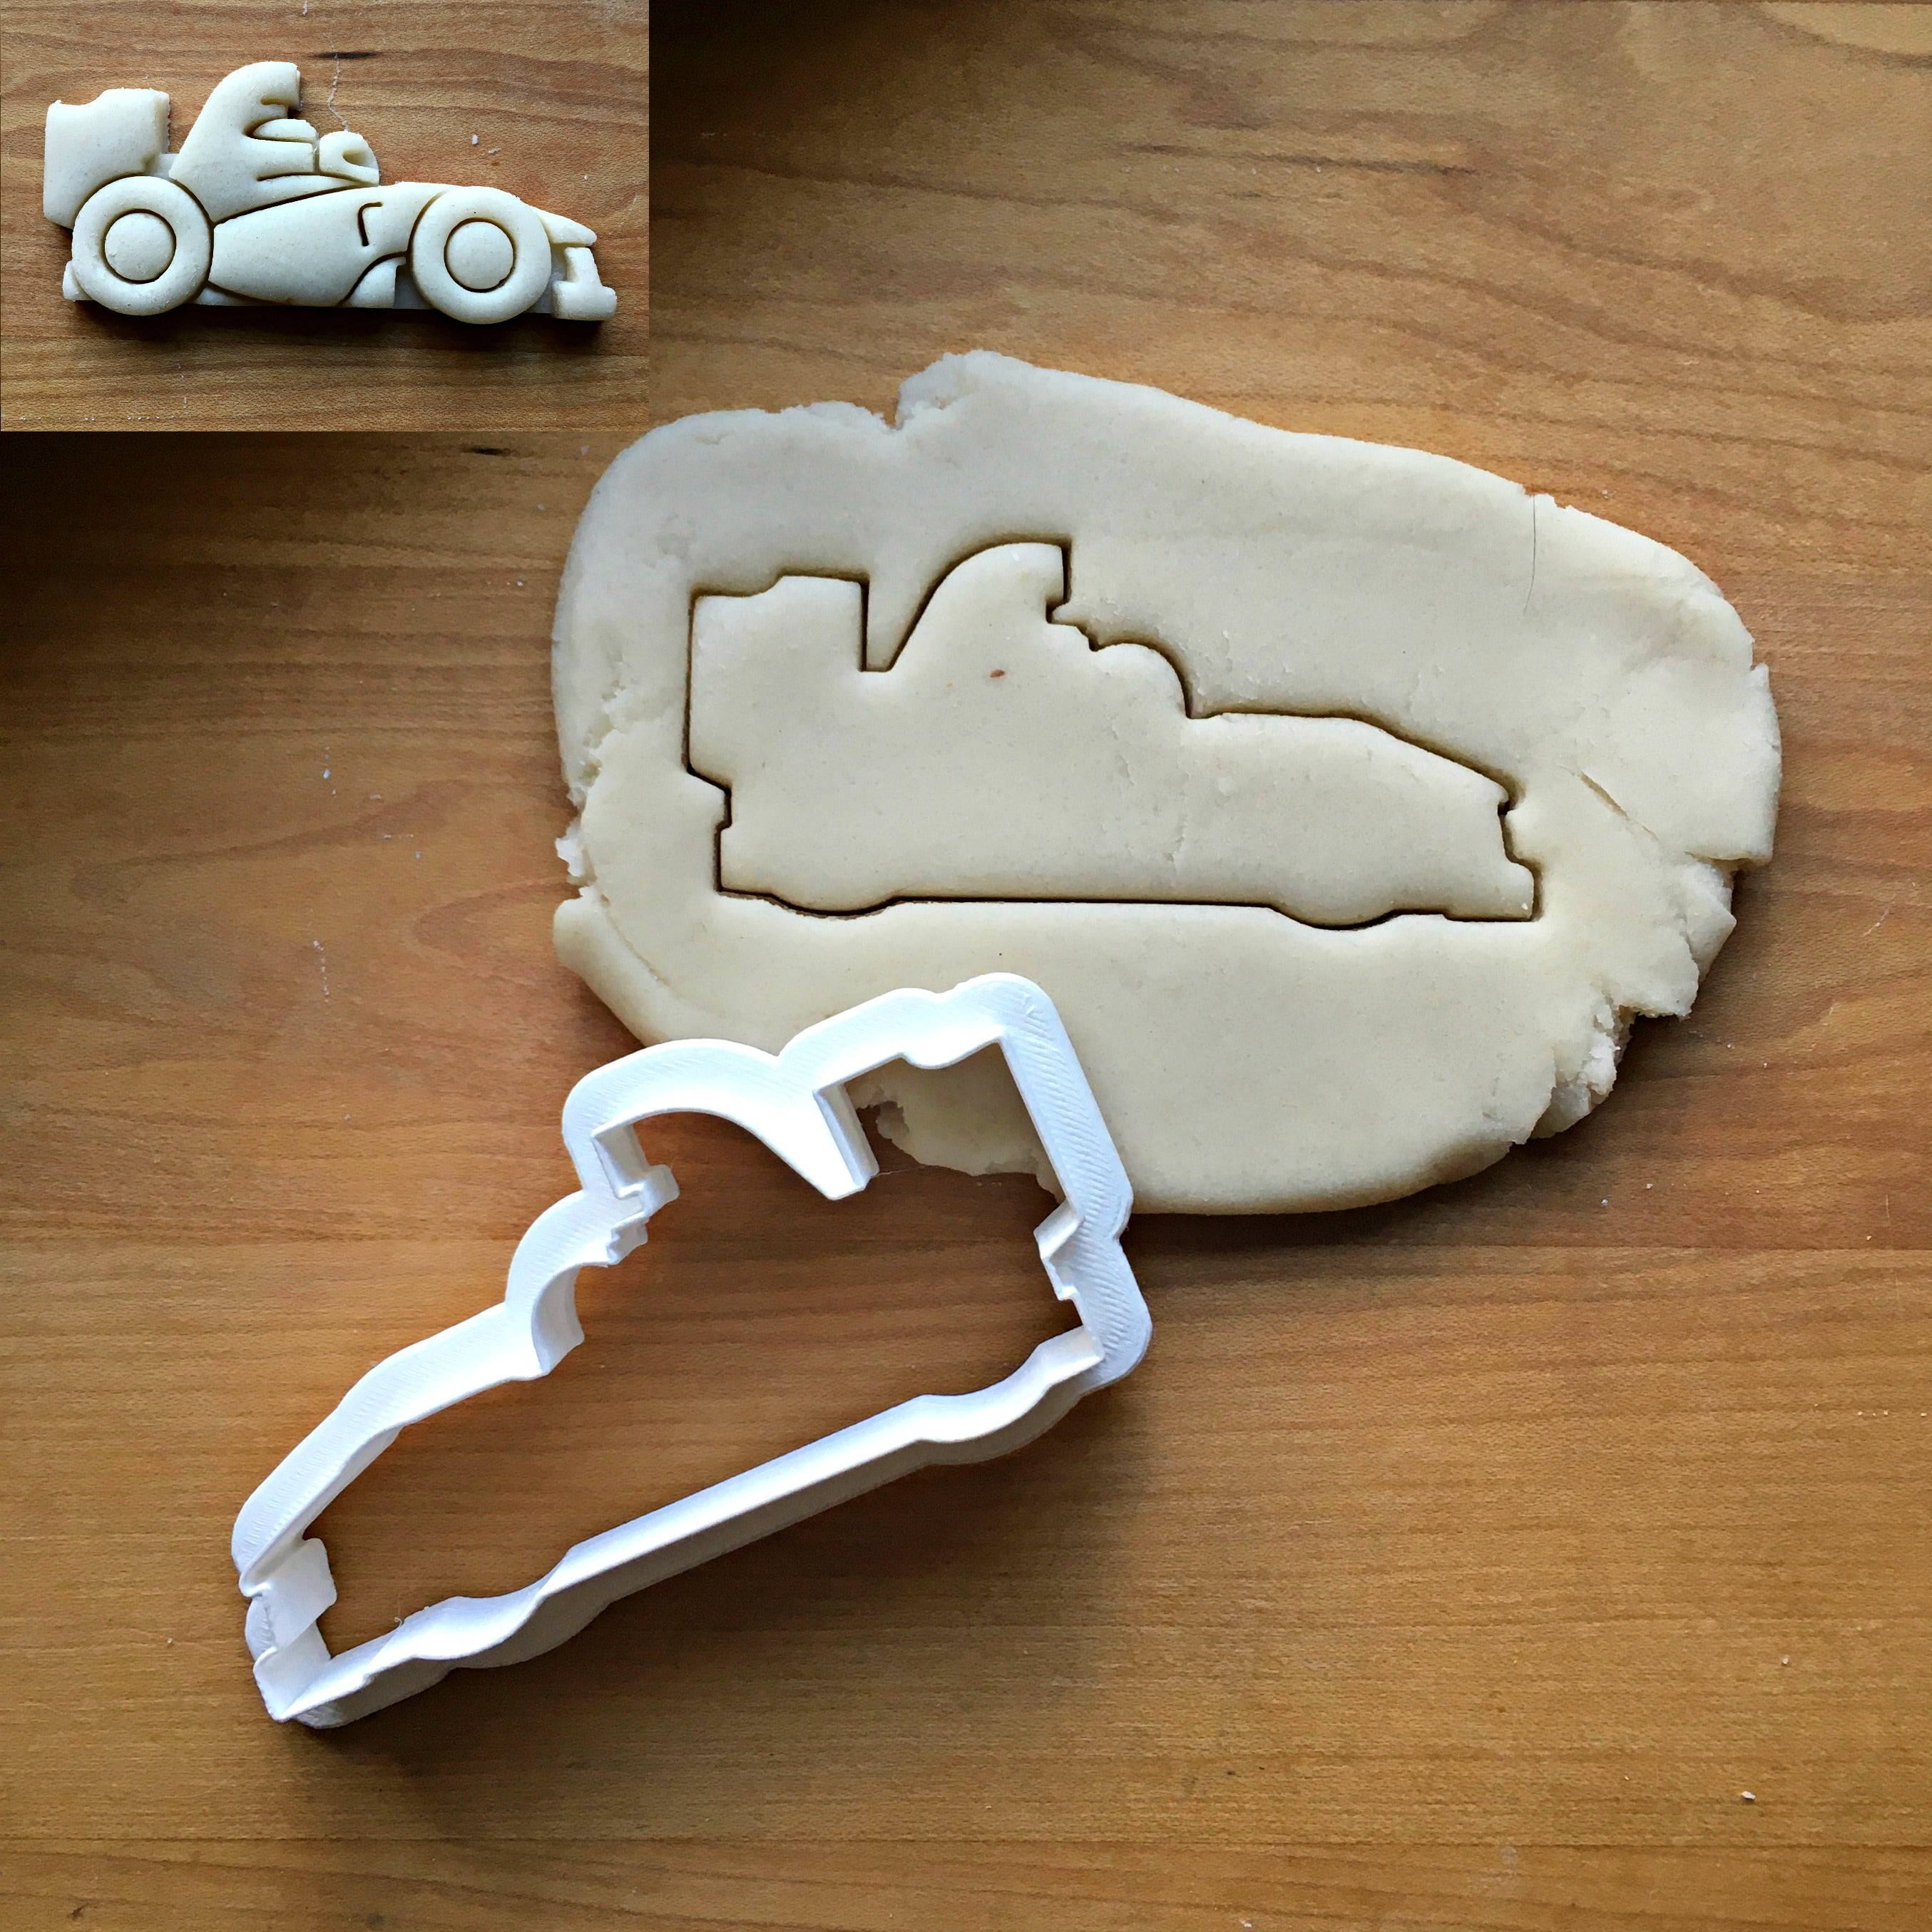 Race Car Cookie Cutter/Dishwasher Safe